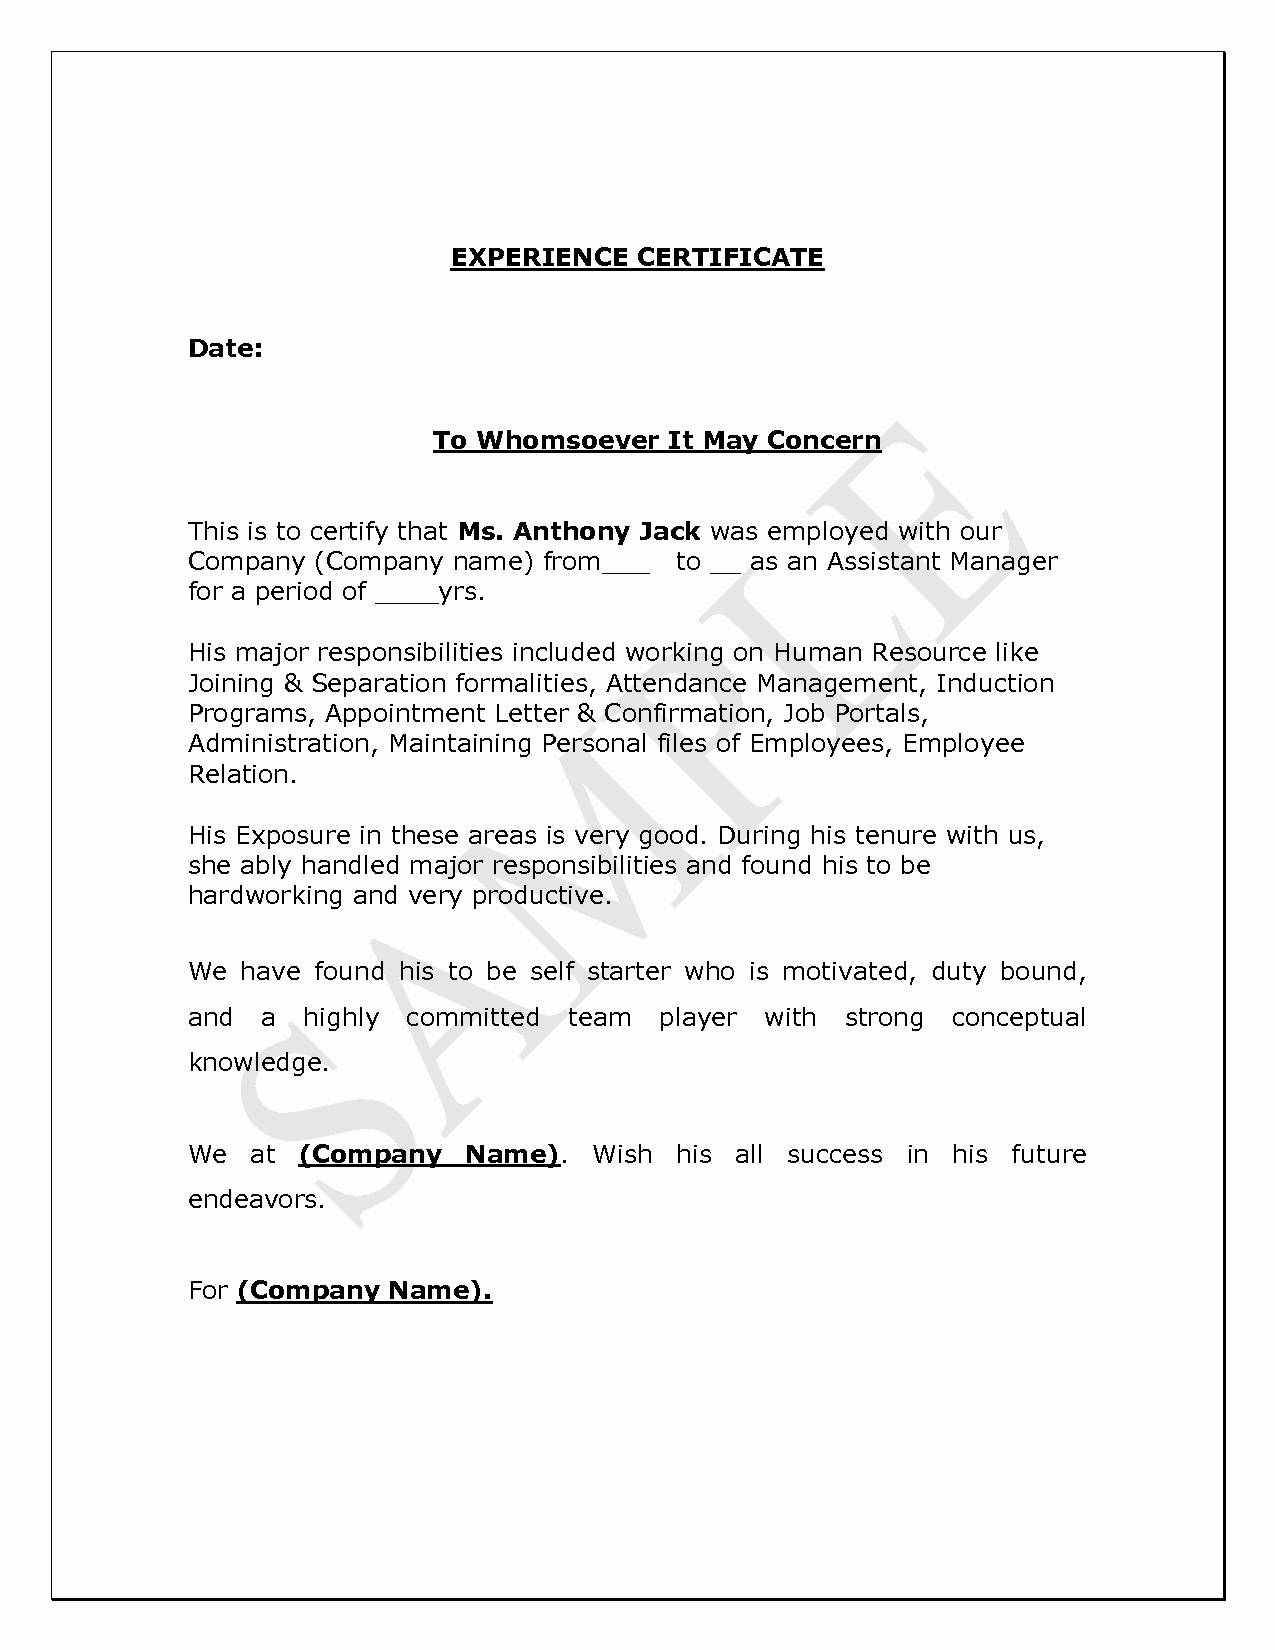 Training Certificate Template Doc Best Of Training Certificate Template Word C